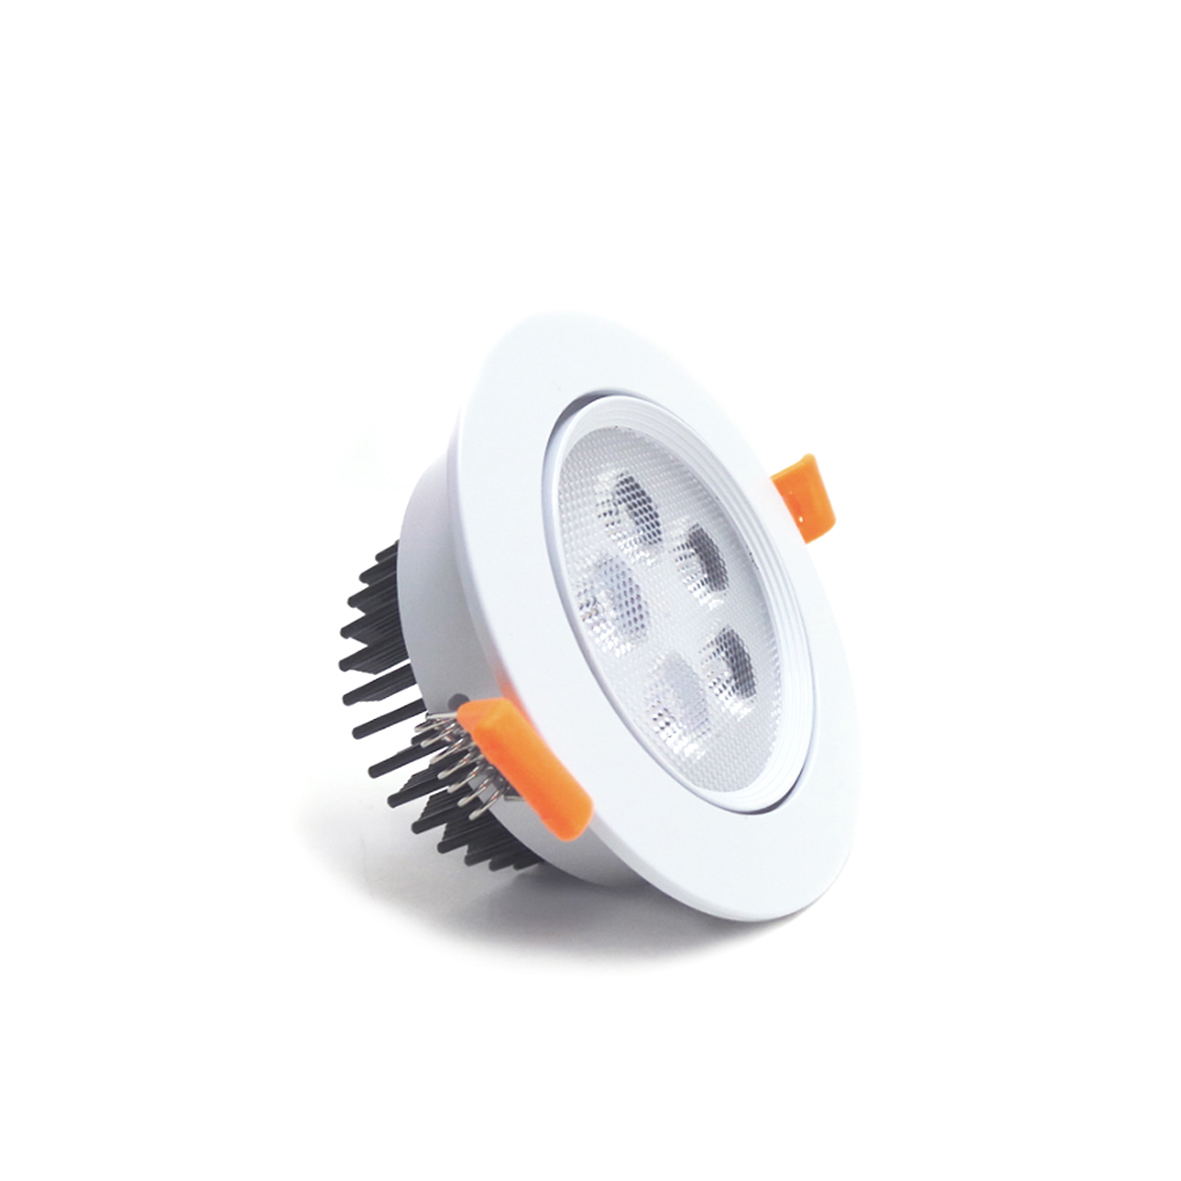 - Foco LED 5W empotrado diámetro de 109 mm ajustable con transformador incluido